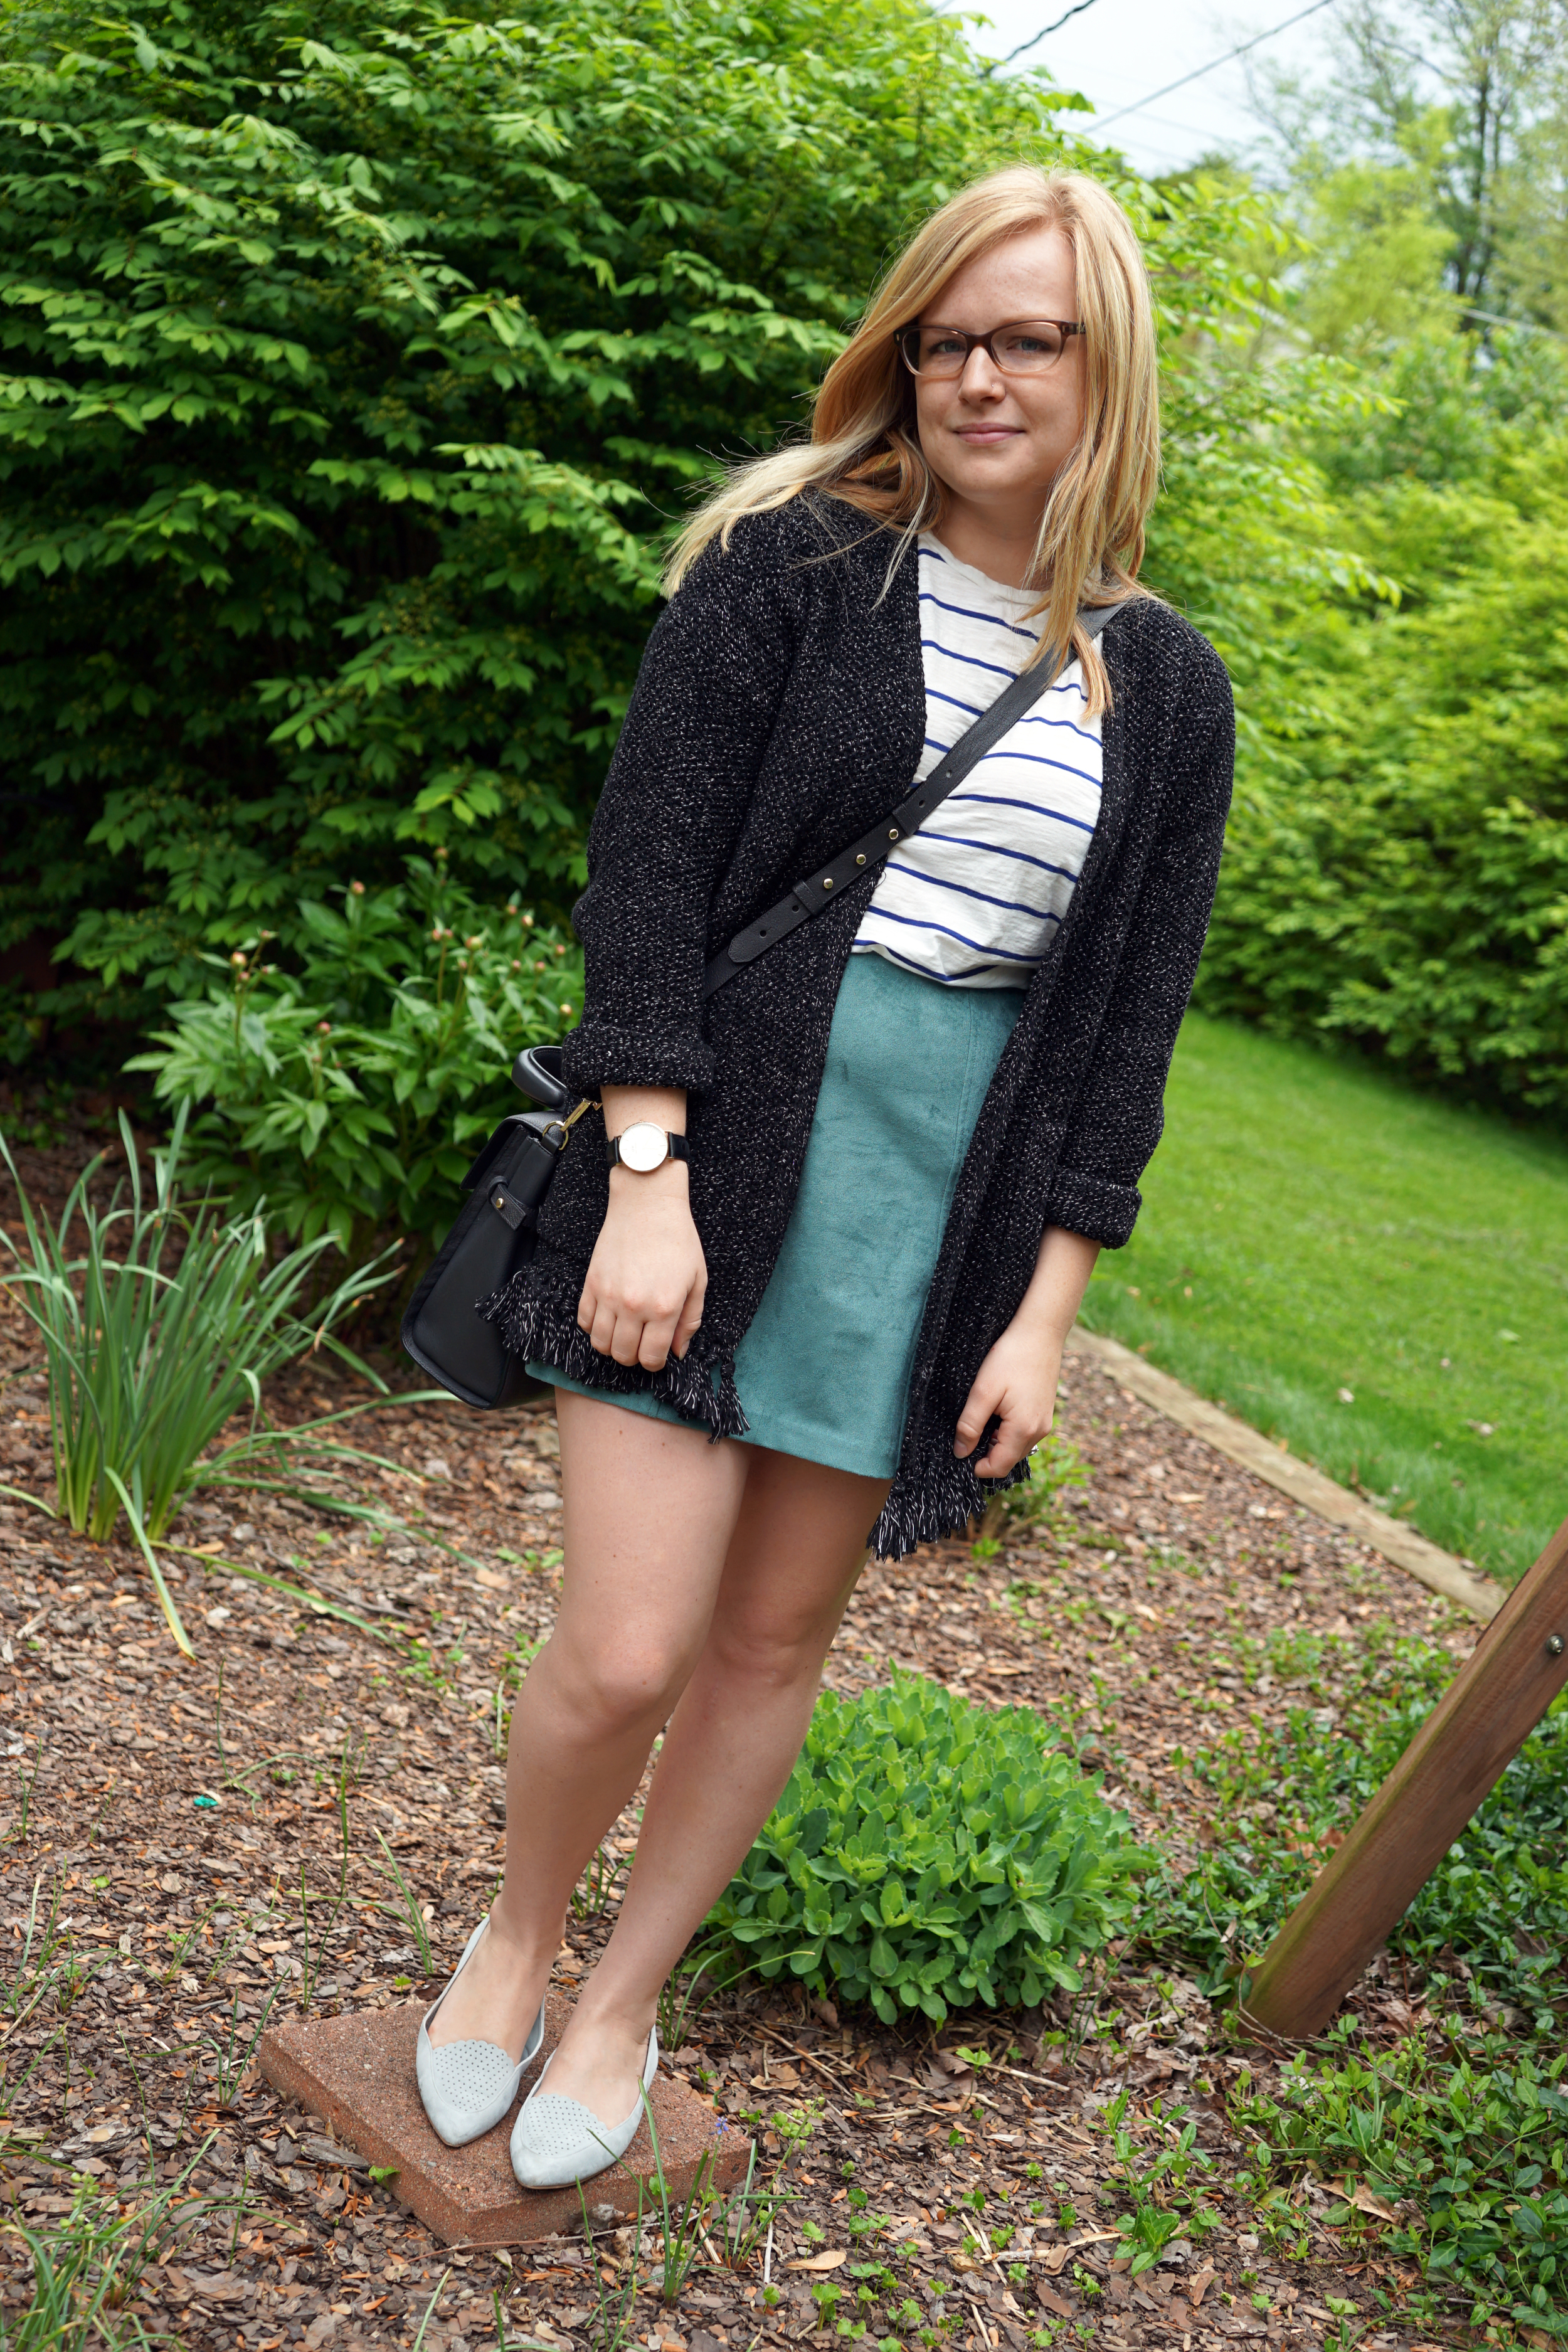 Kendall and Kylie suede skirt, Madewell whisper cotton tee shirt, Madewell memento fringe sweater, Cole Haan Allison perforated pointed toe flat, Luana Italy paley mini satchel - Maggie a la Mode